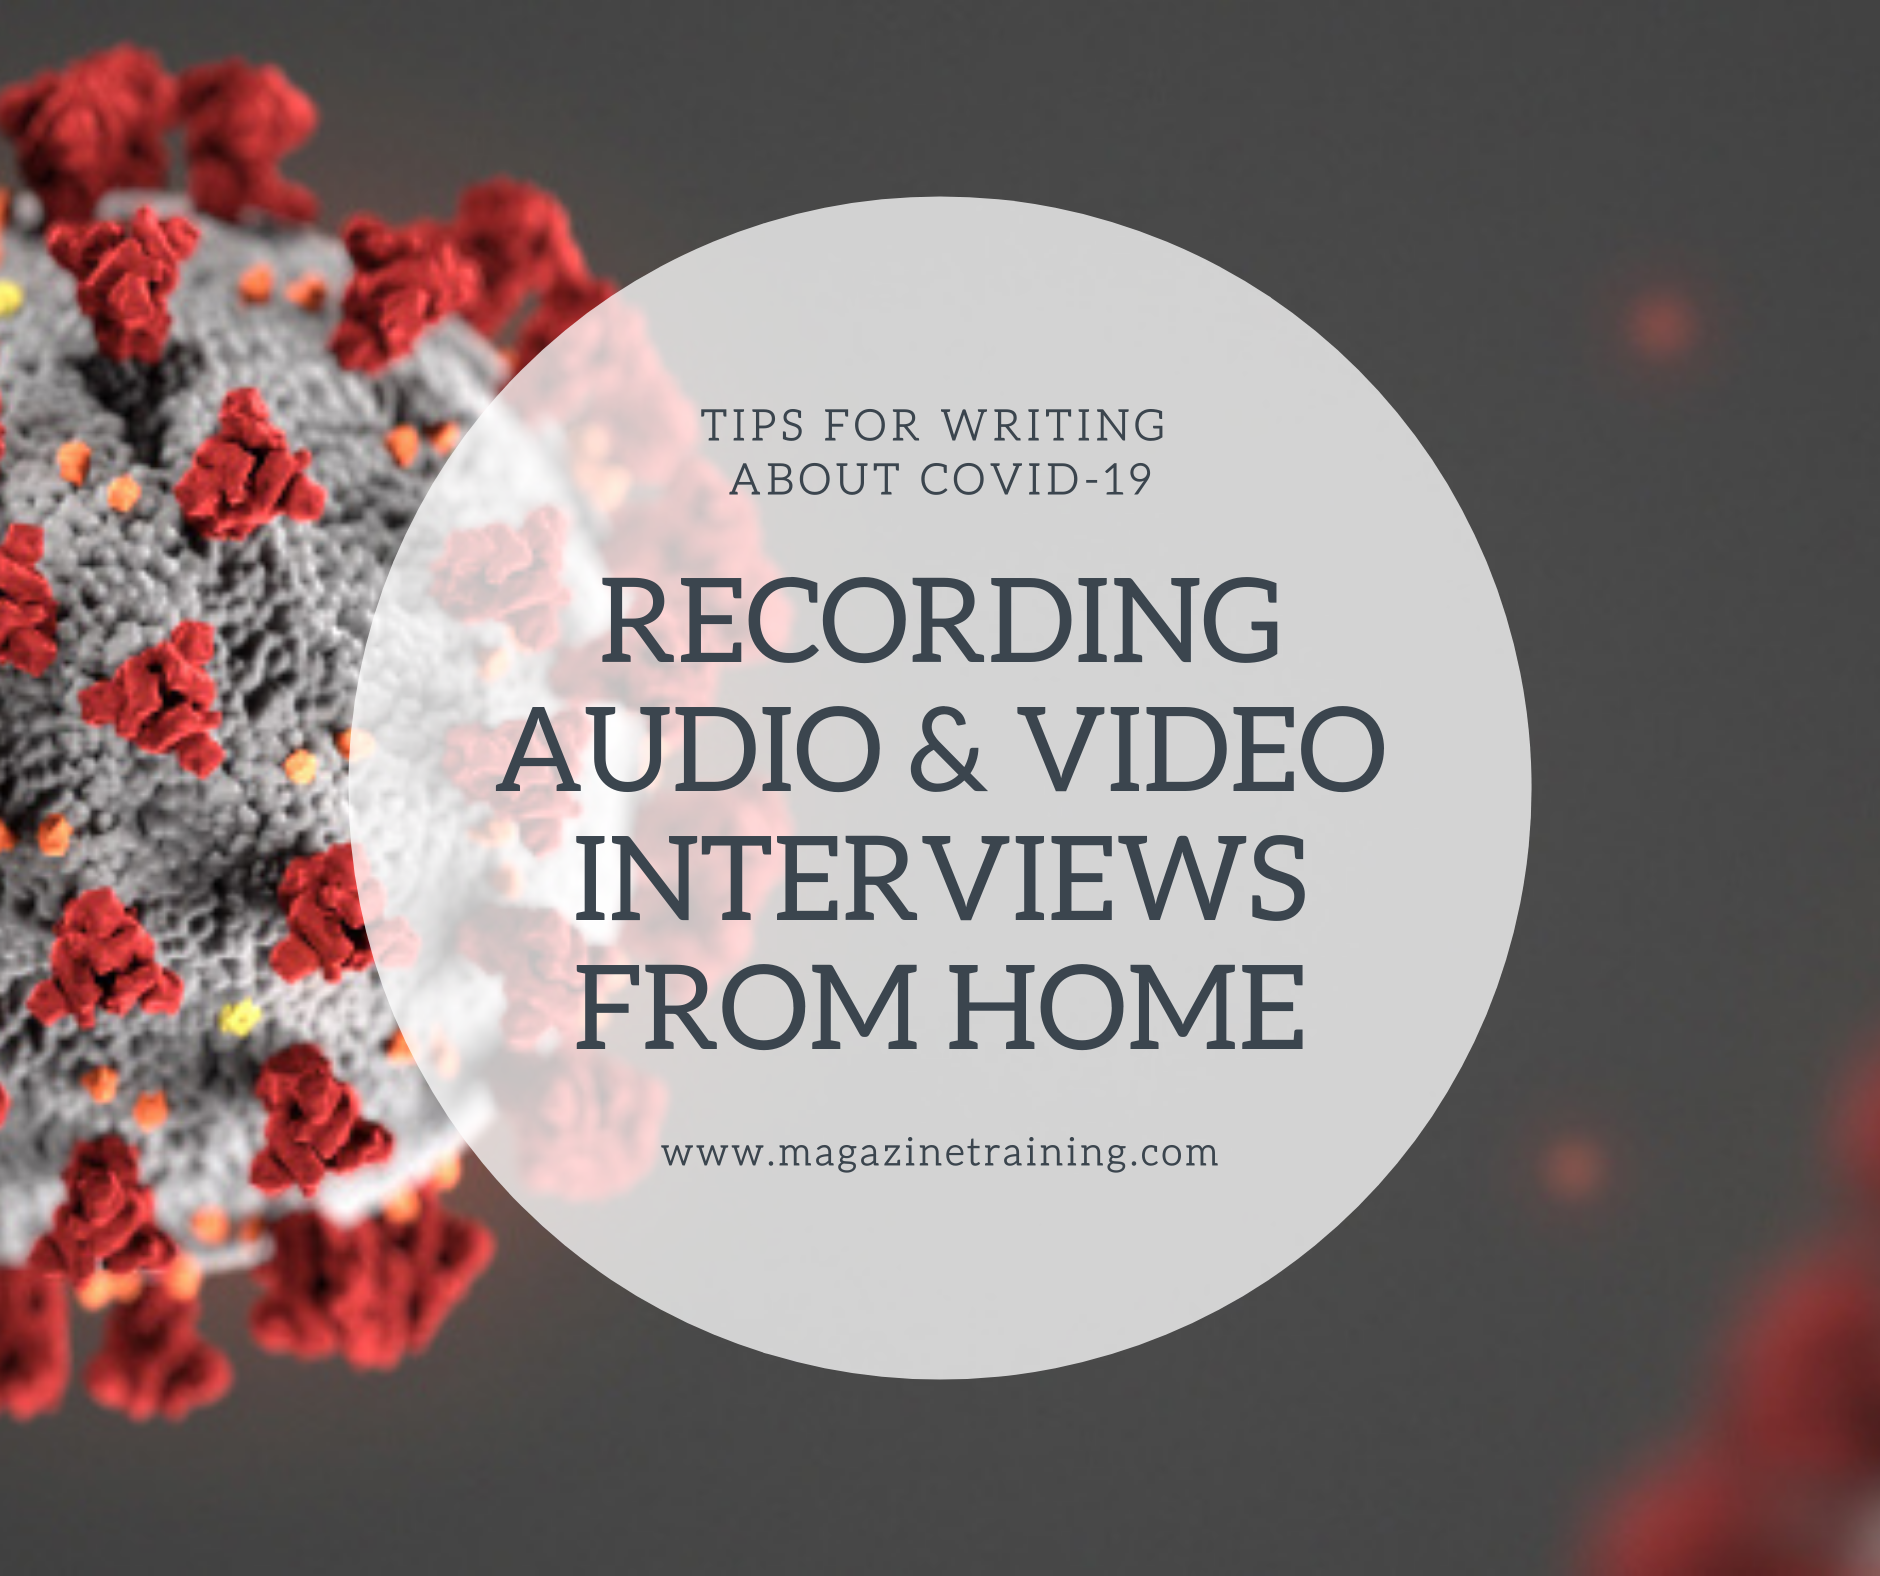 recording audio and video interviews from home